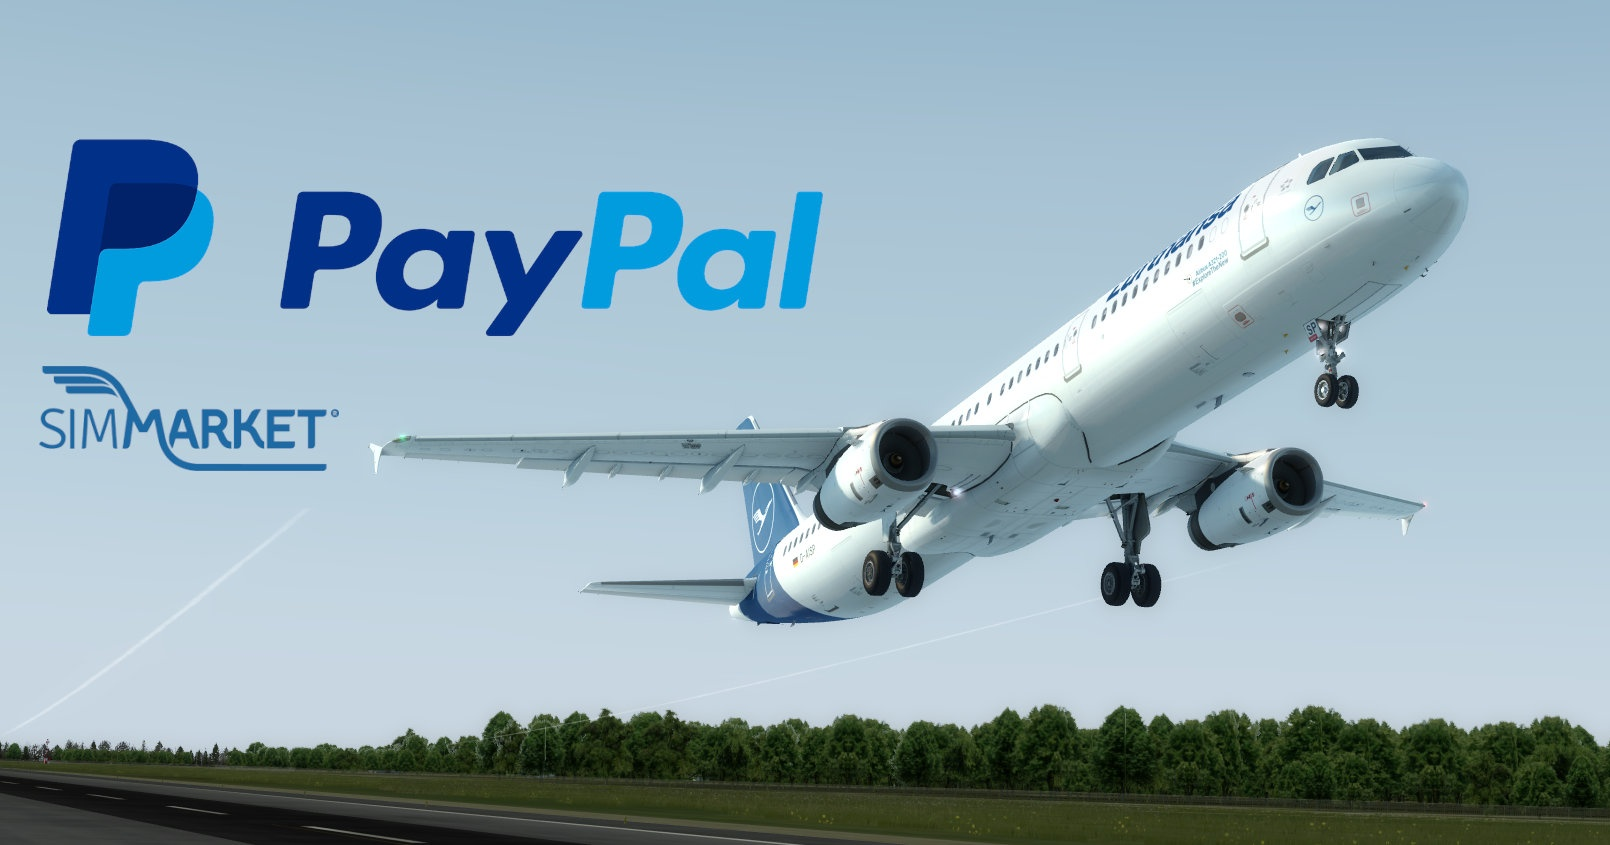 PayPal Stop at simMarket